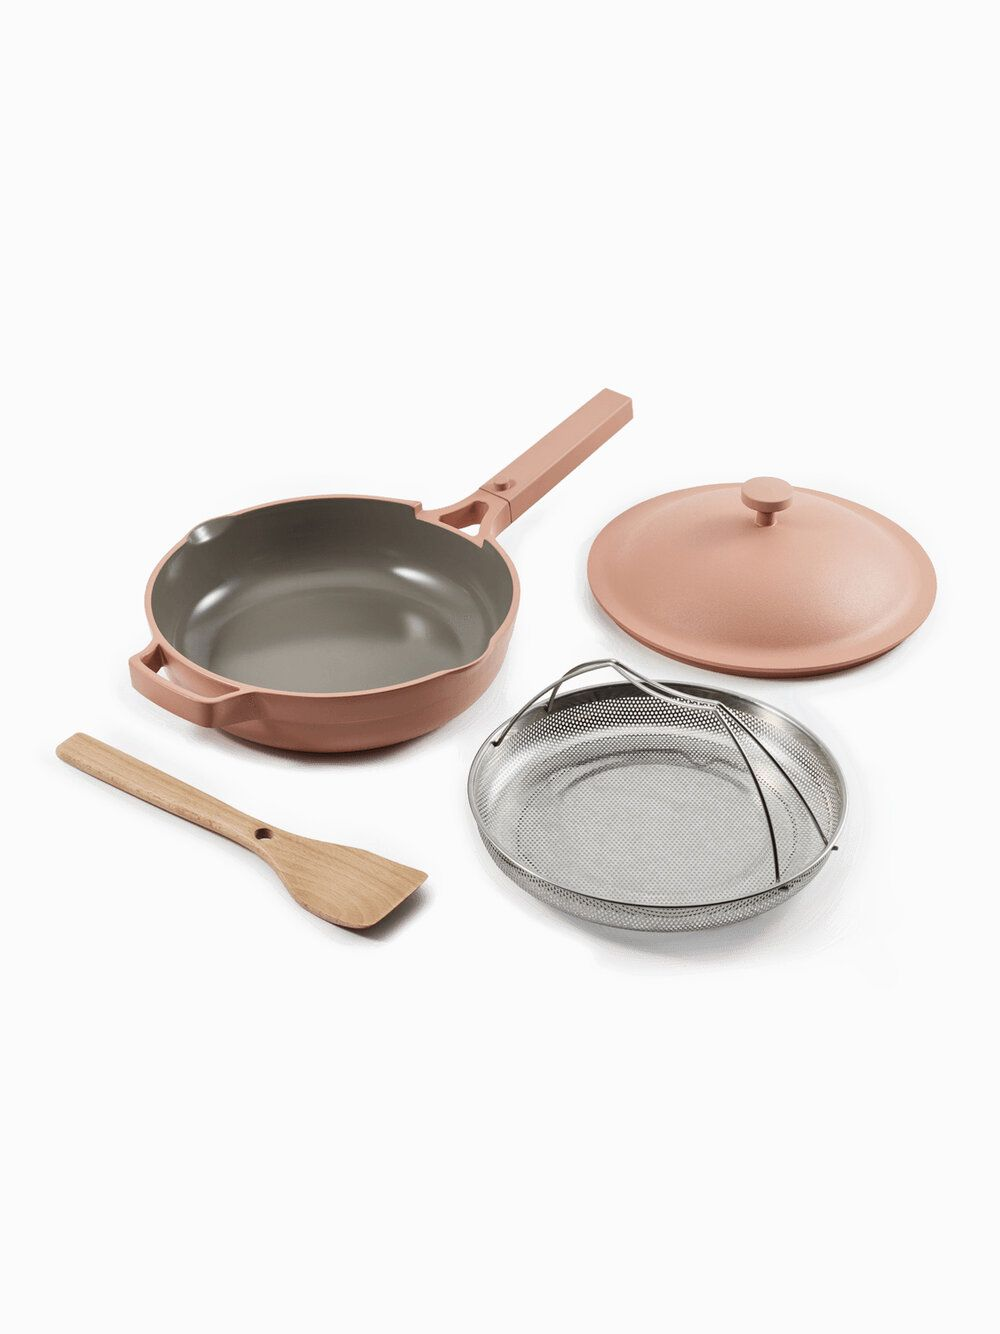 7 Sustainable Nontoxic Cookware Brands Outfitting Our Kitchens In 2020 Cookware Nontoxic Ceramic Dutch Oven